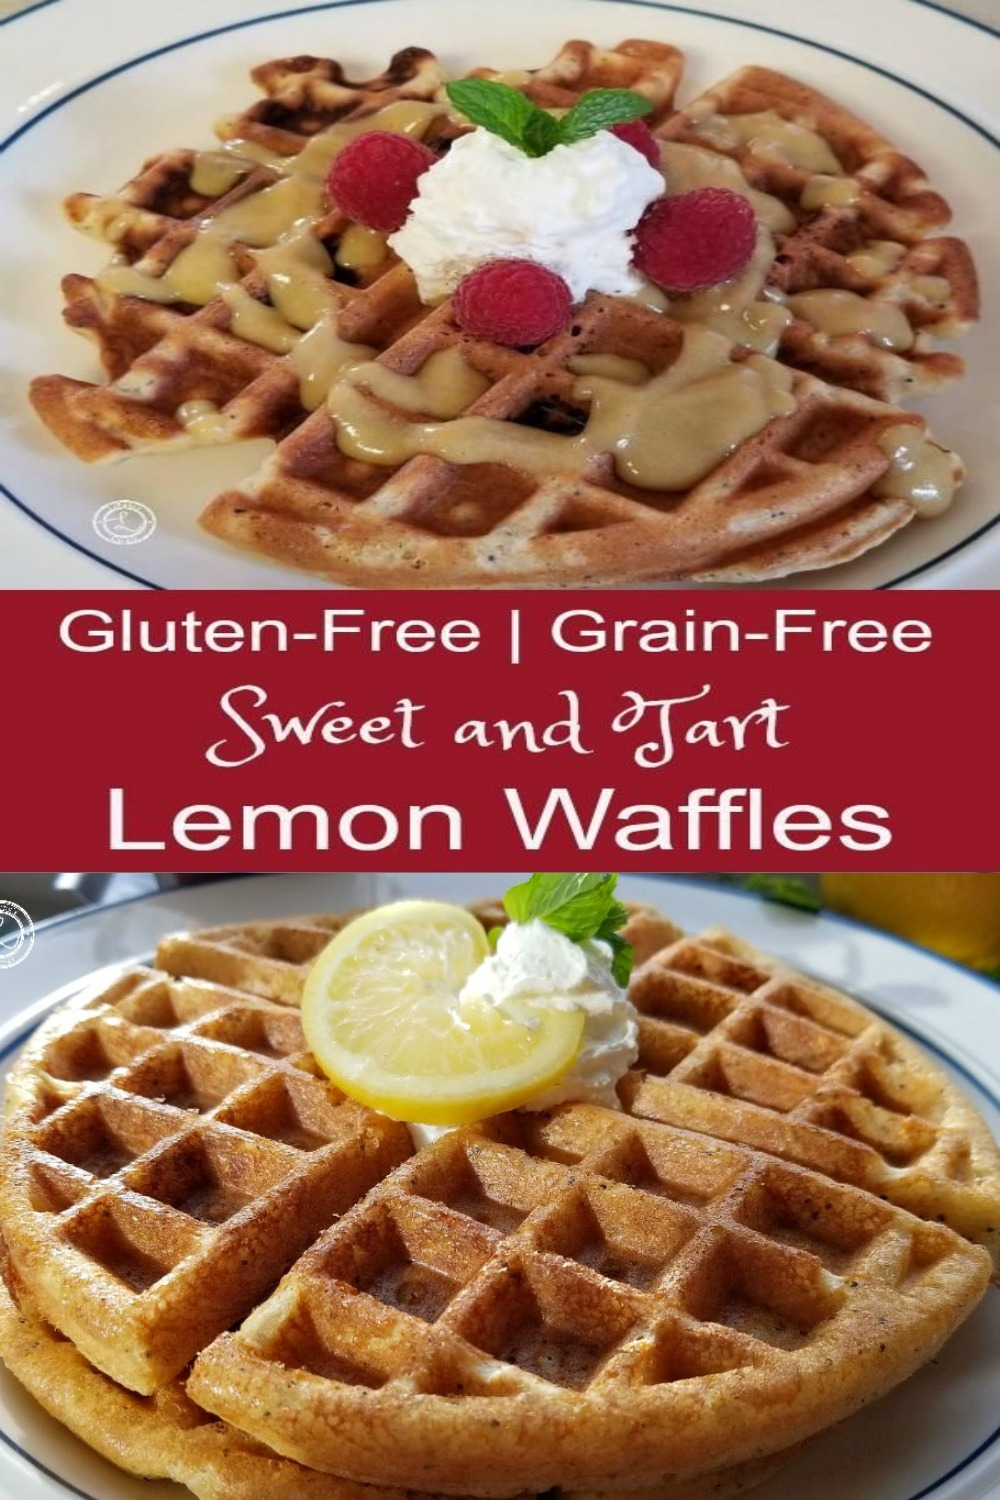 Gluten-Free Sweet and Tart Lemon Waffes